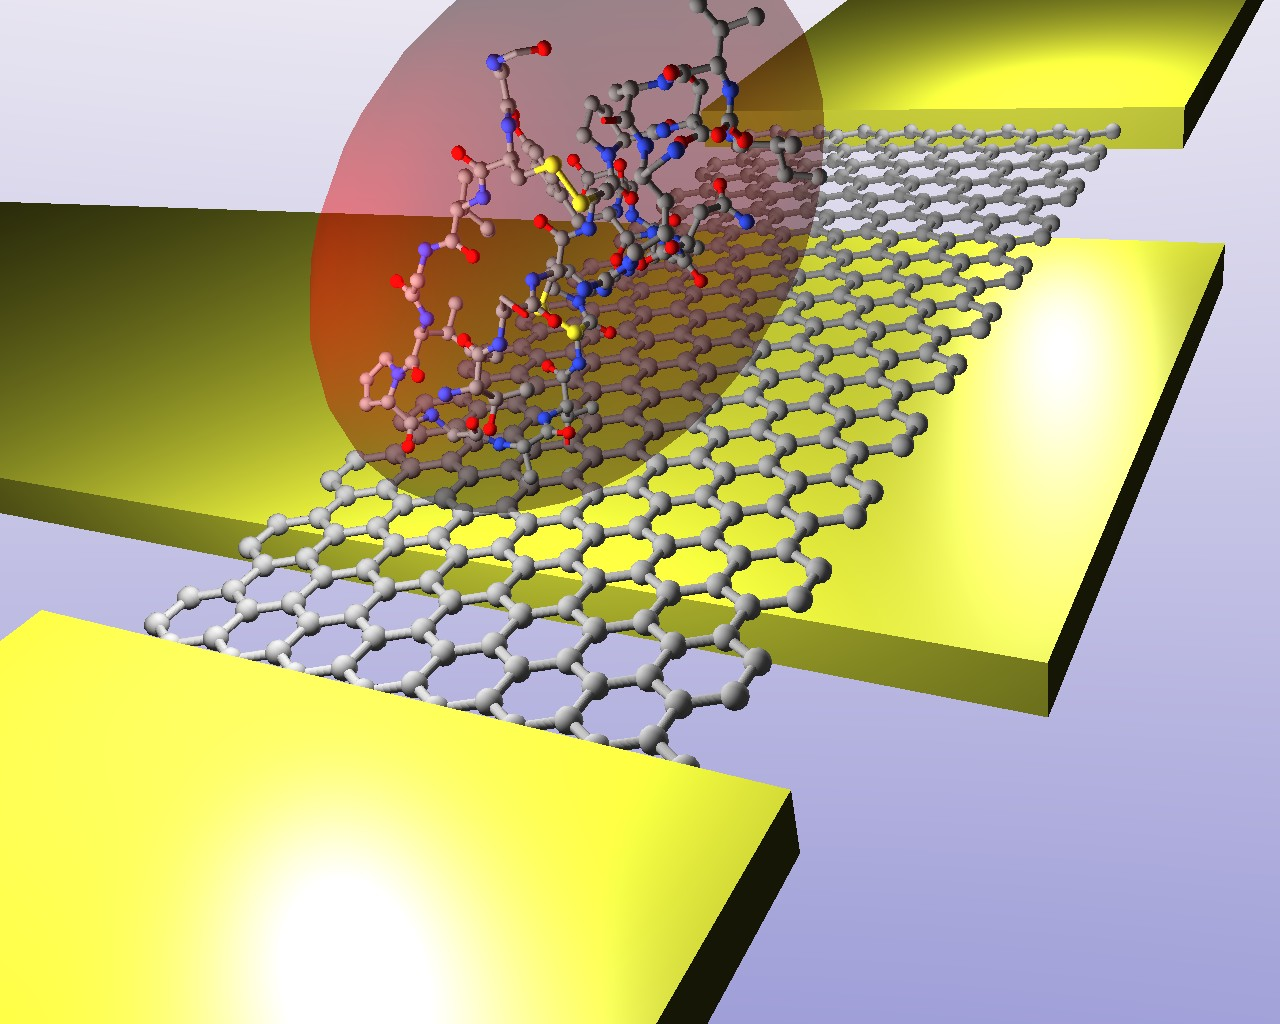 graphene nanoribbon thesis